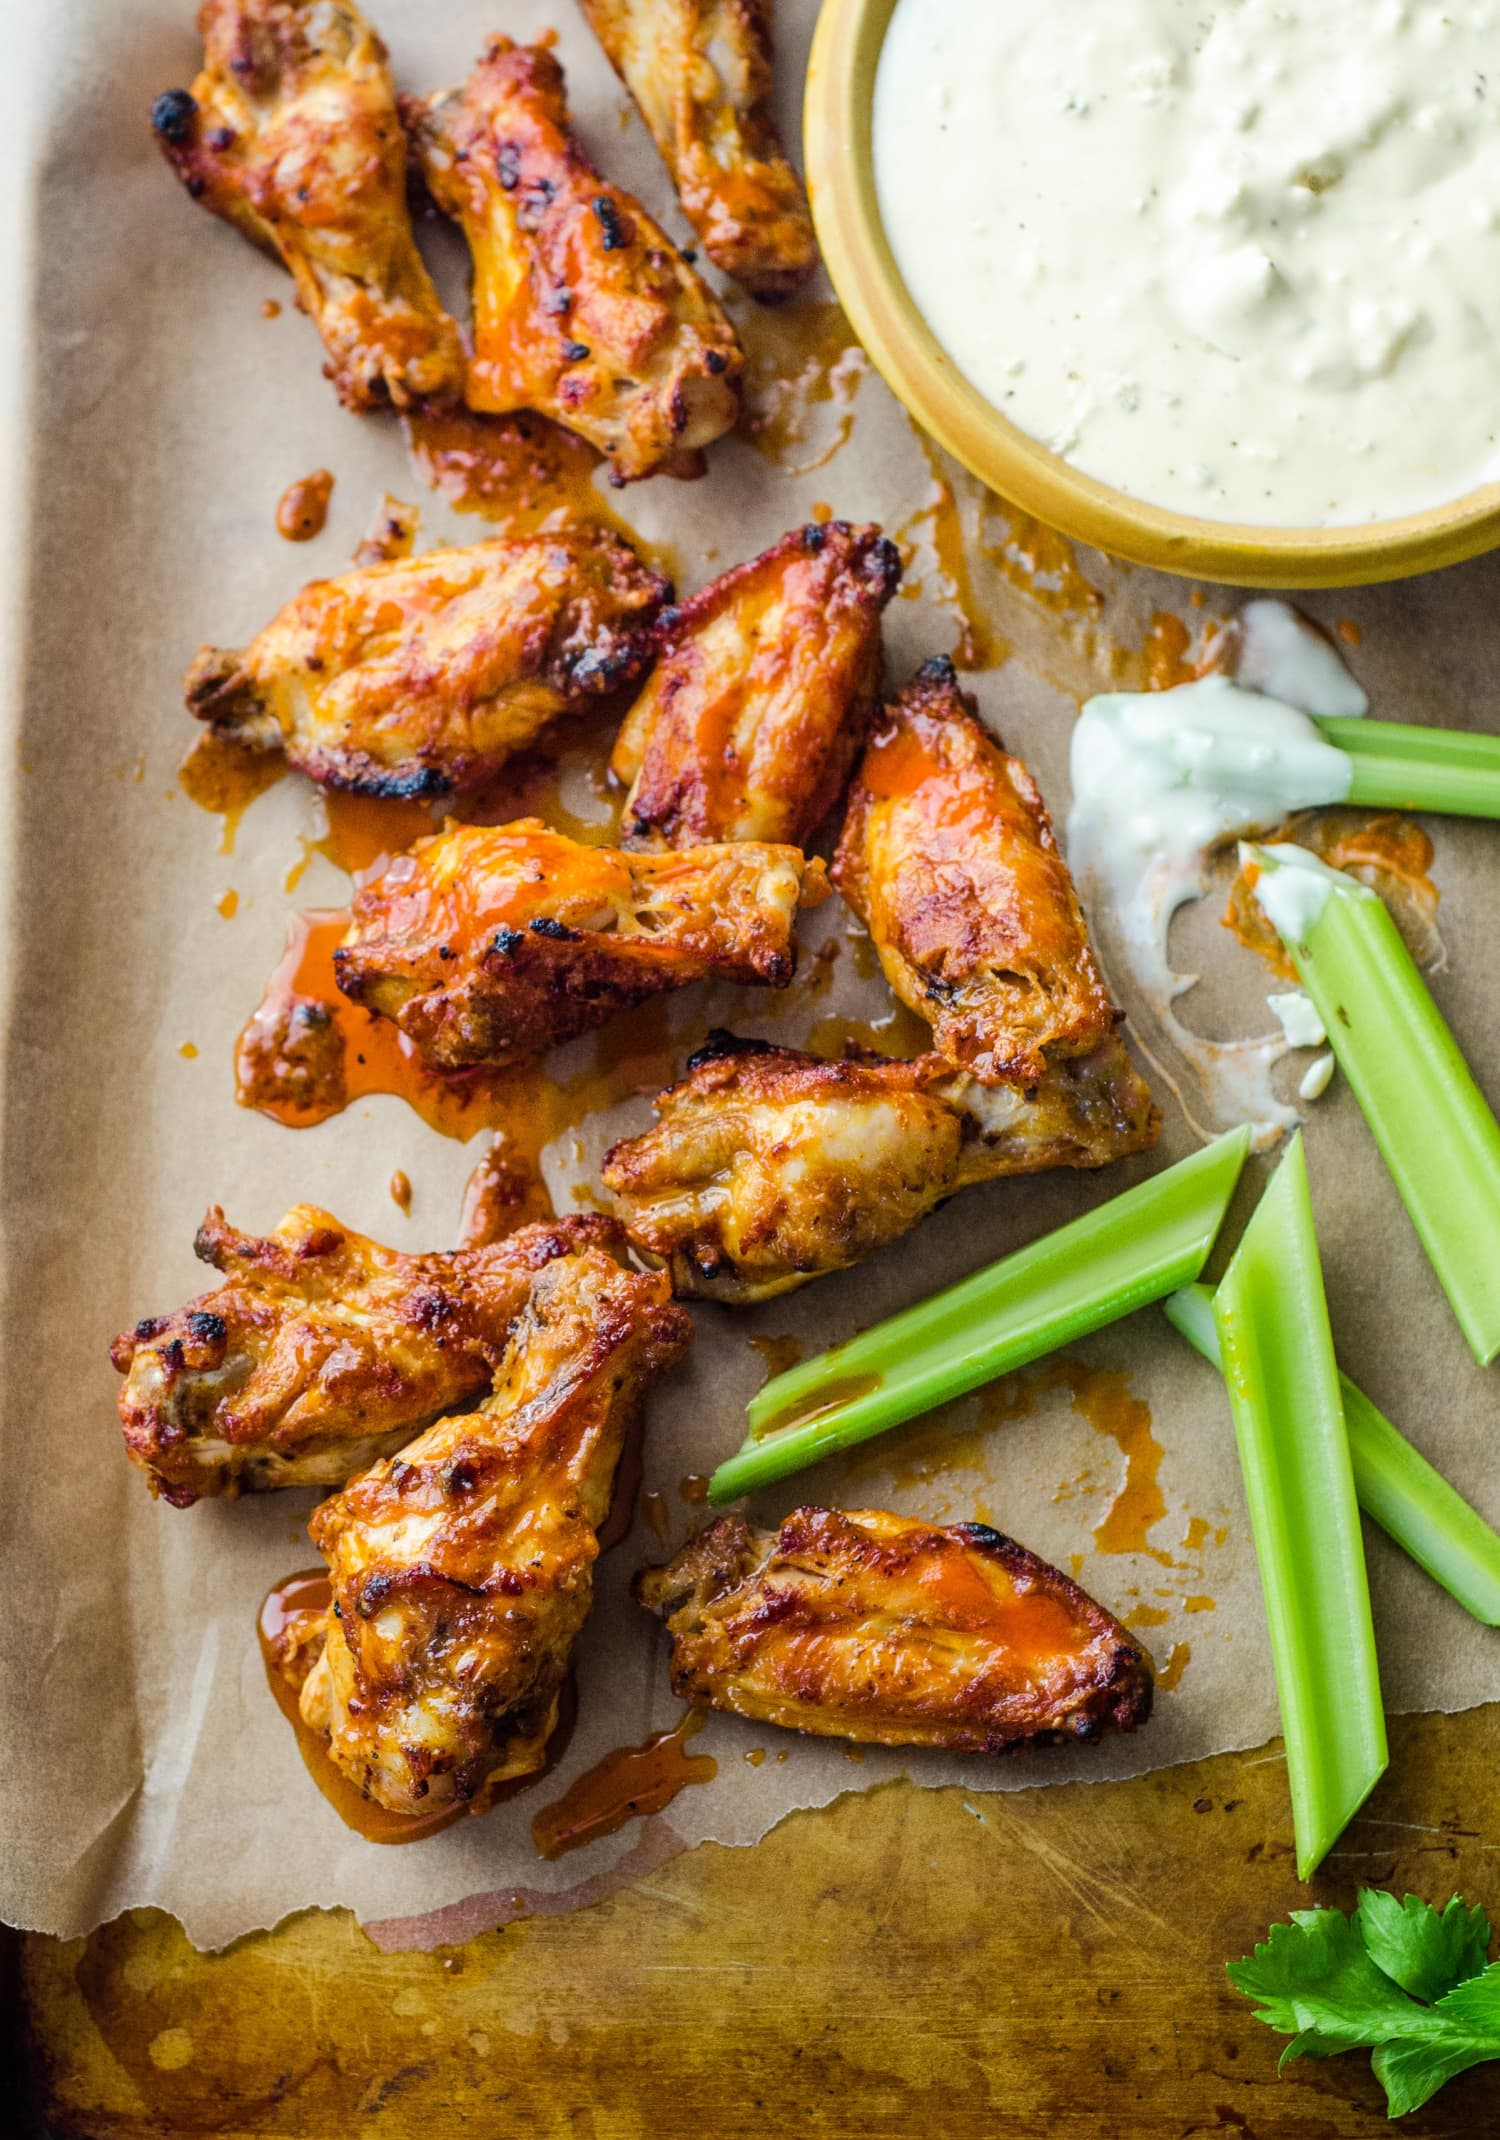 How To Make Buffalo Wings in the Oven